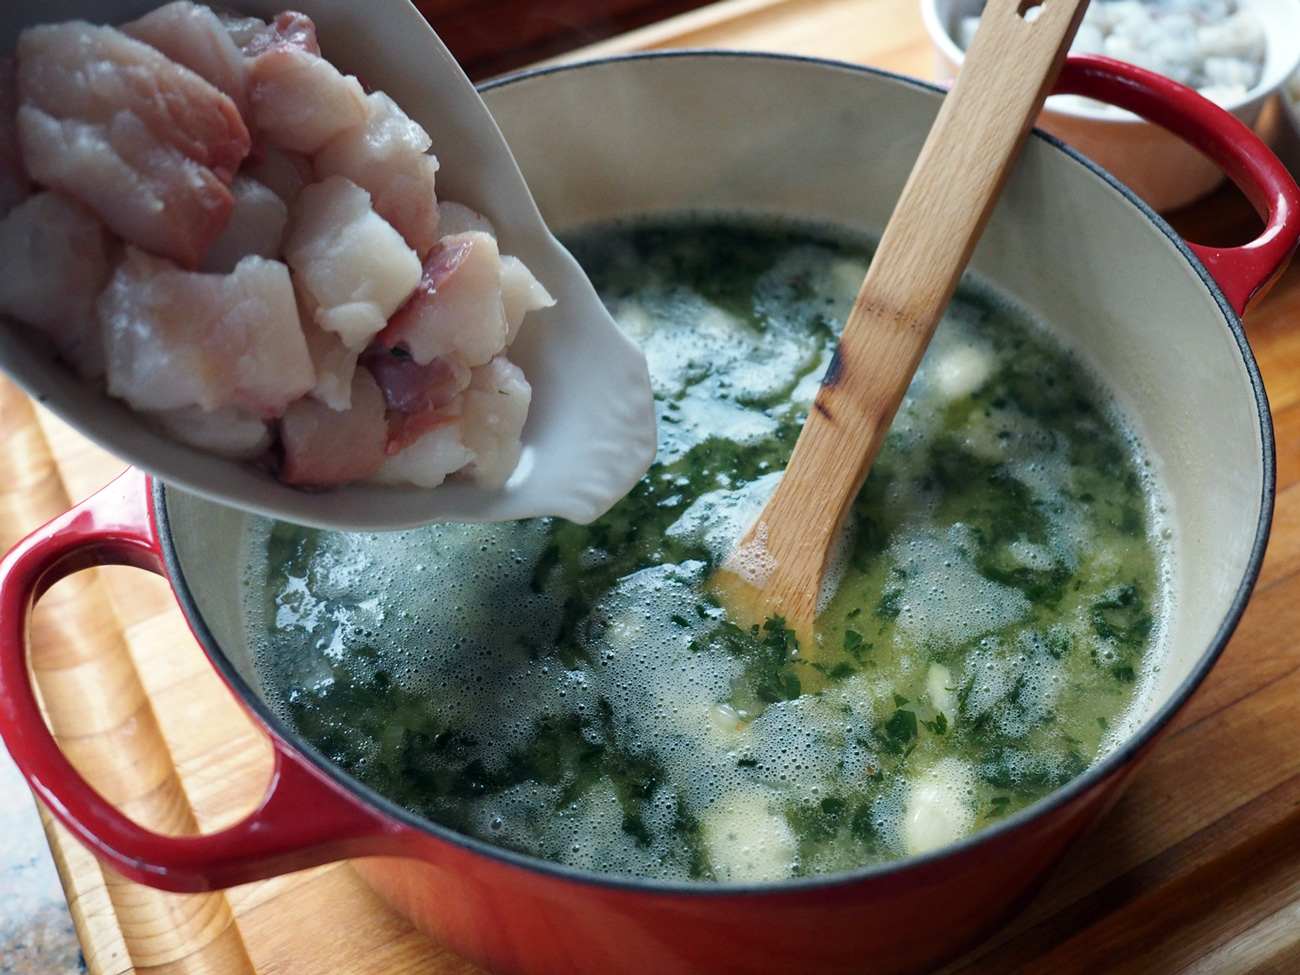 Monkfish in the pot.